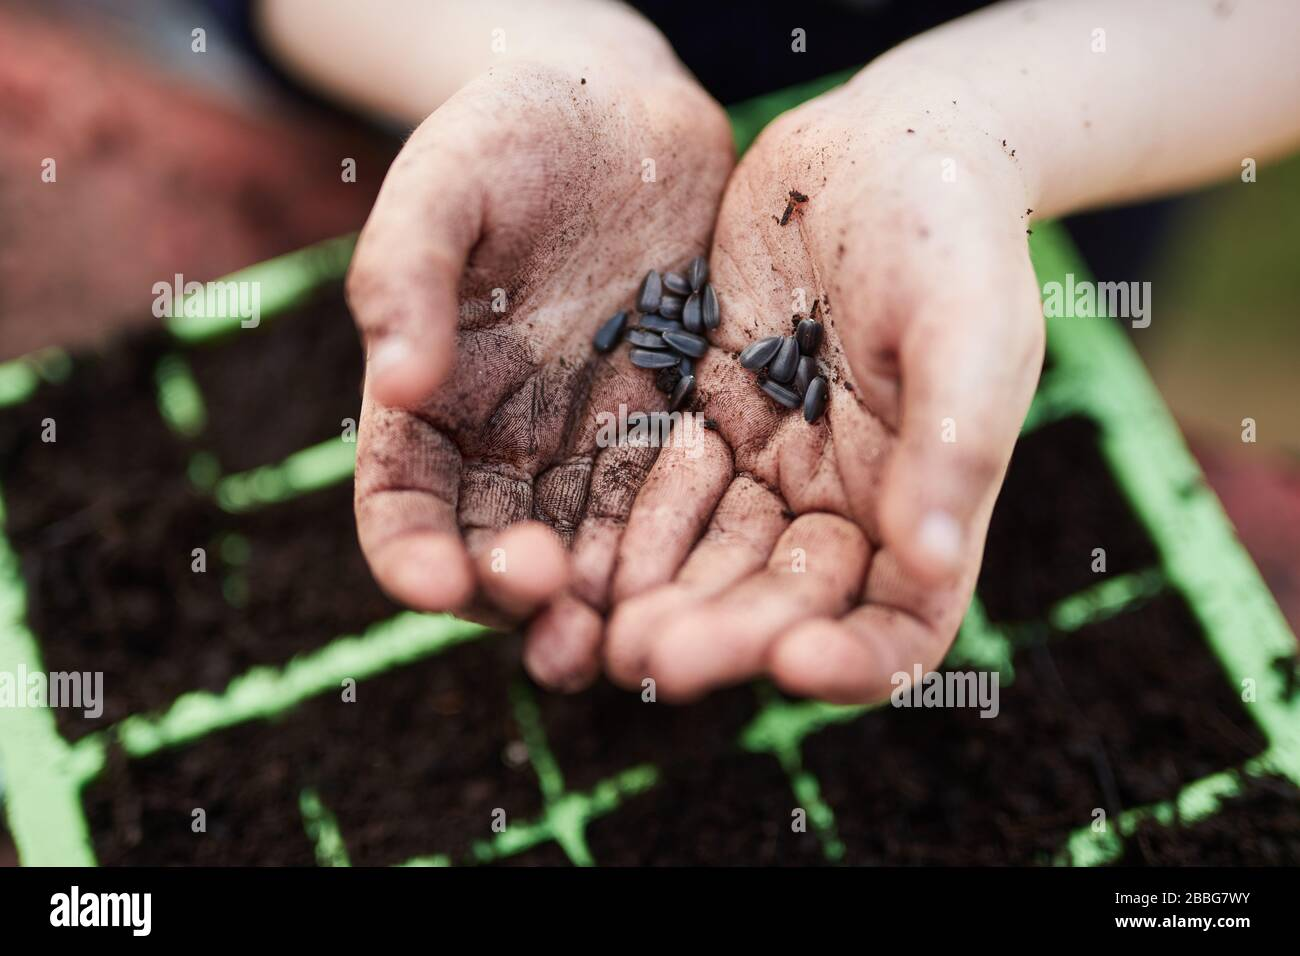 A pair of Primary school aged children hands holding plant seeds above green plastic seed trays Stock Photo